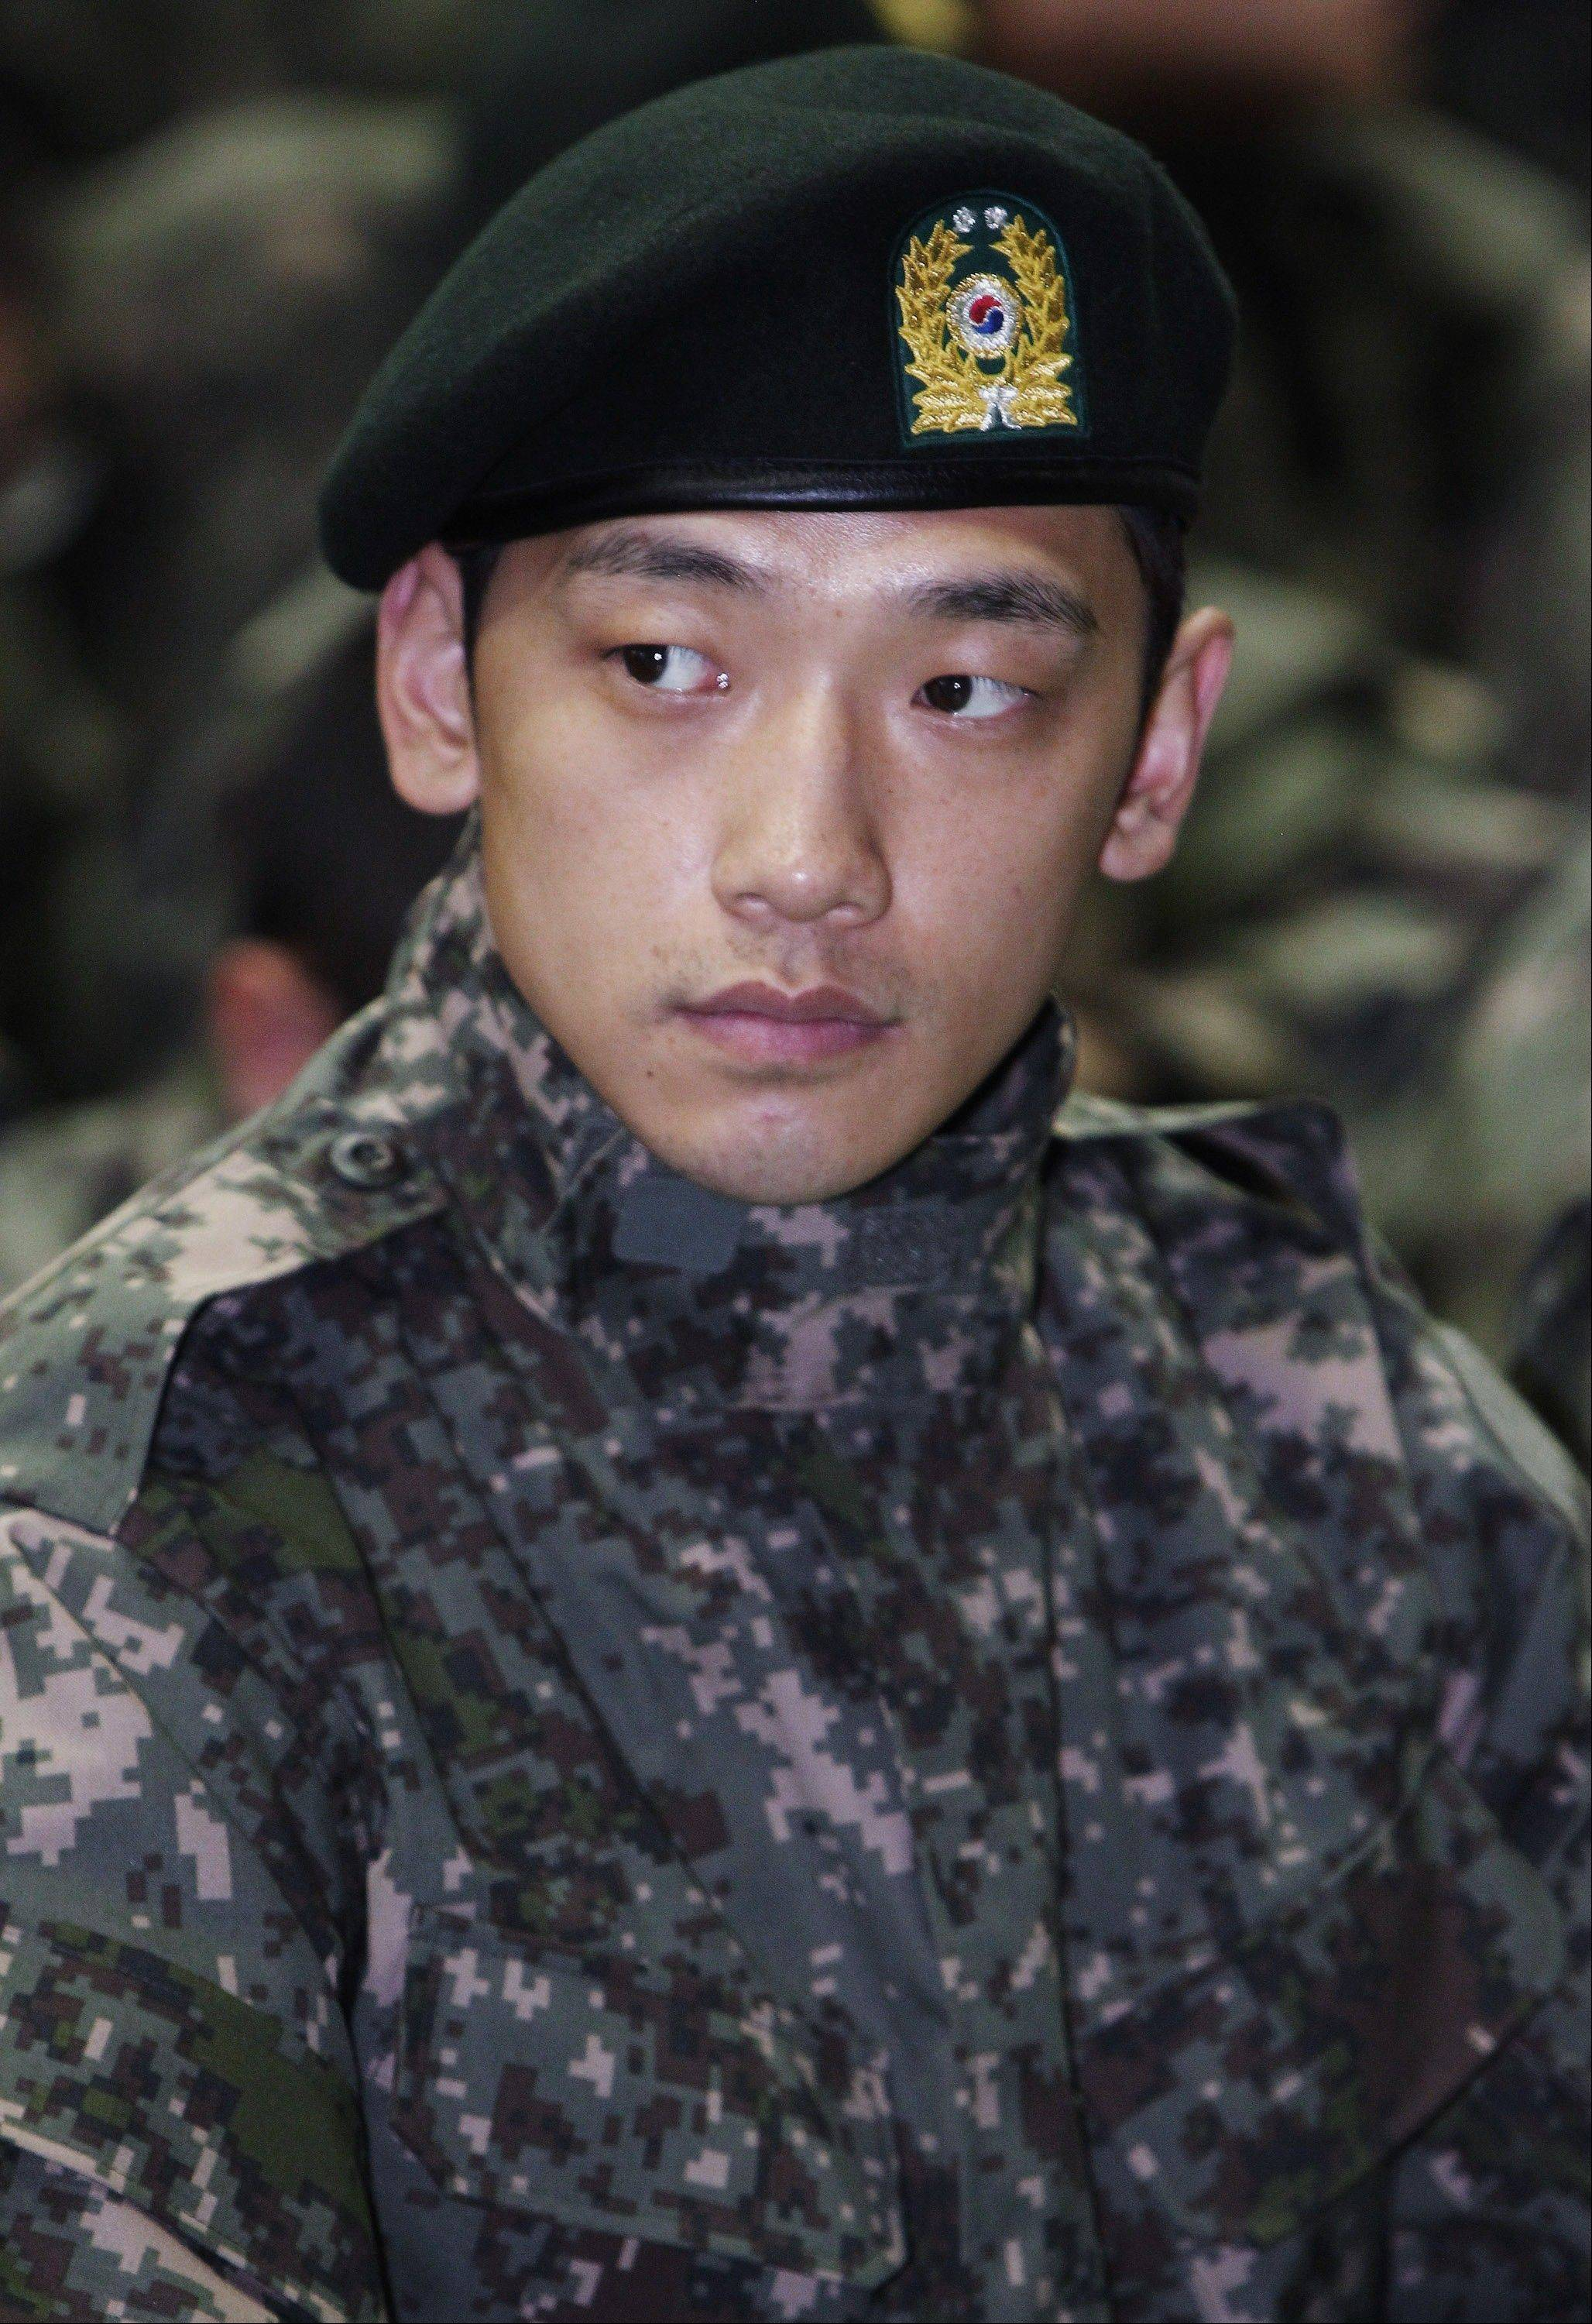 South Korean pop singer Rain is facing questions after paparazzi photos showed him out on the town with a top actress. Seoul's Defense Ministry said Wednesday it is investigating whether Rain broke military rules by meeting actress Kim Tae-hee while on duty.